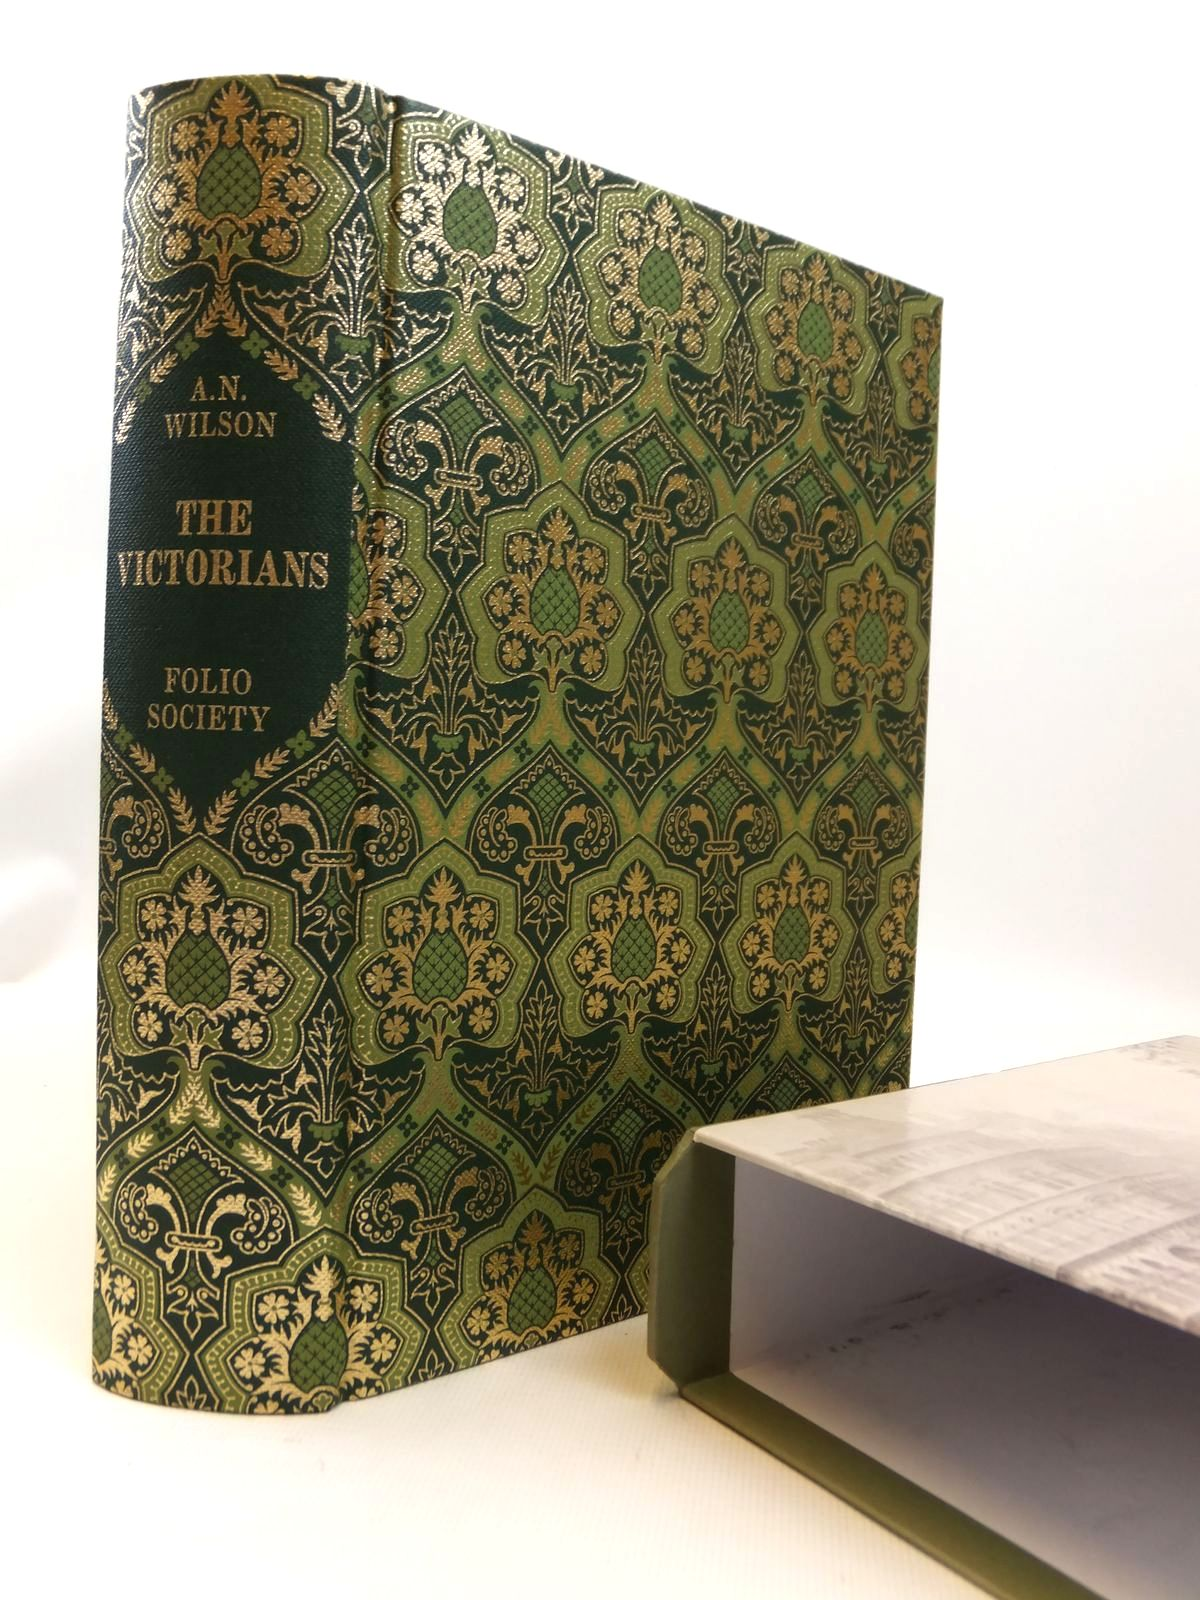 Photo of THE VICTORIANS written by Wilson, A.N. published by Folio Society (STOCK CODE: 1812595)  for sale by Stella & Rose's Books